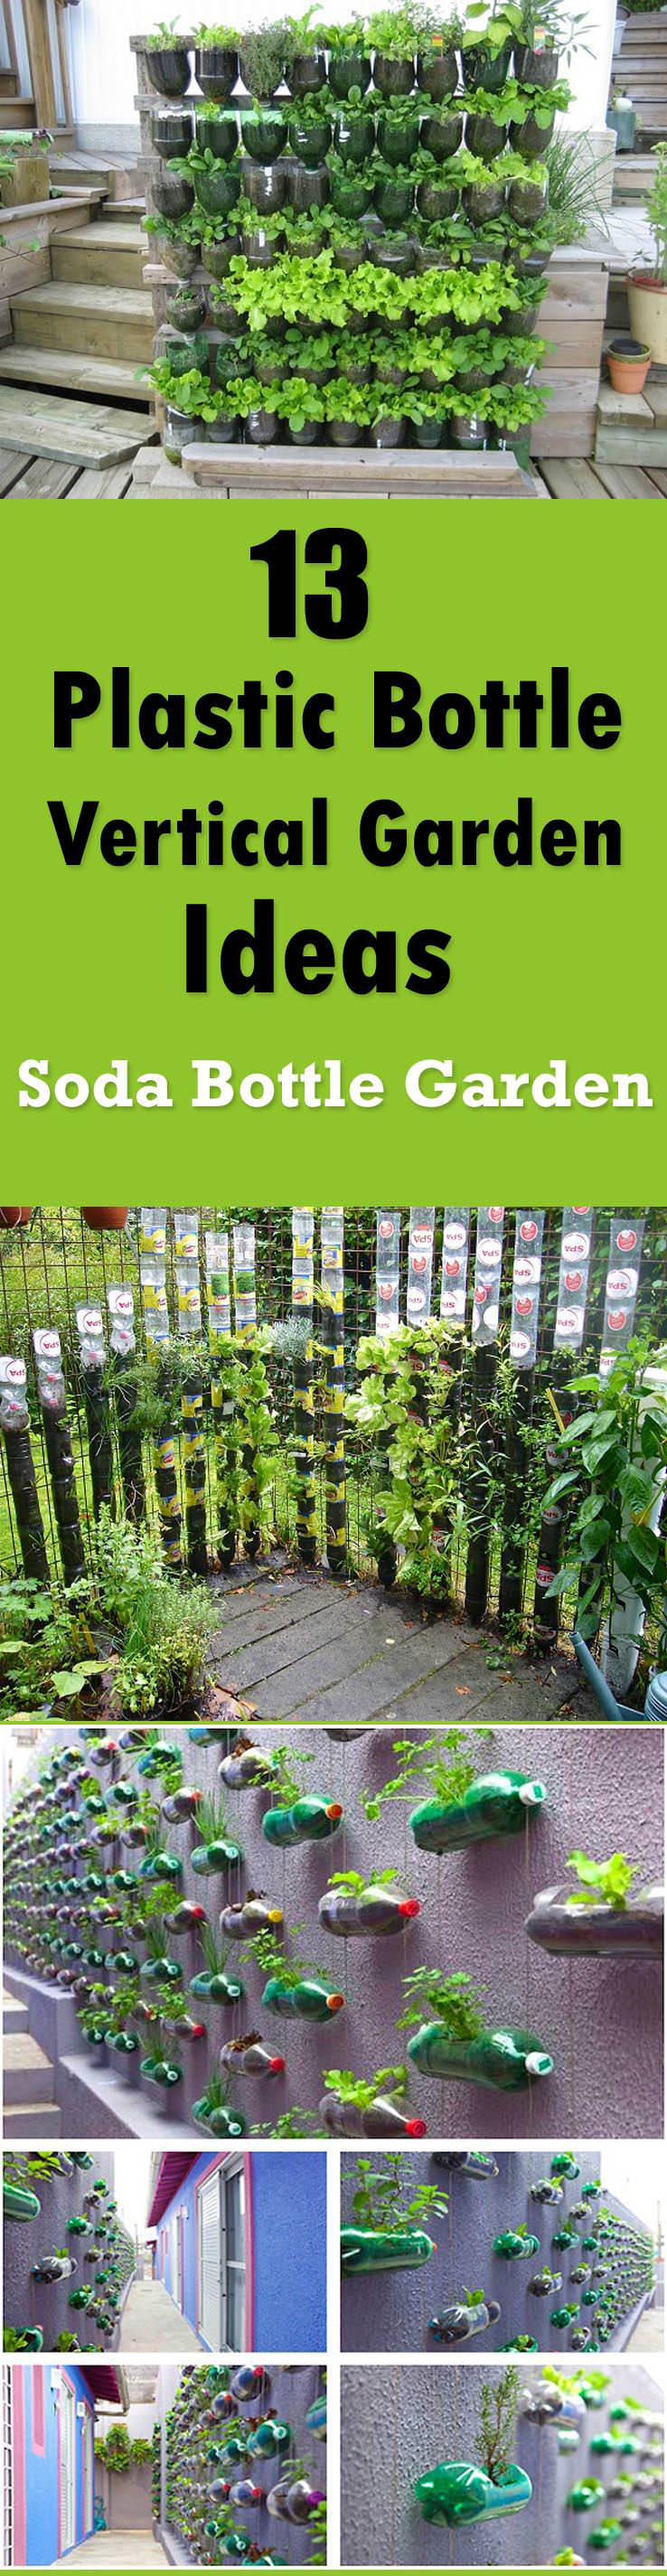 13 Plastic Bottle Vertical Garden Ideas | Soda Bottle Garden ...